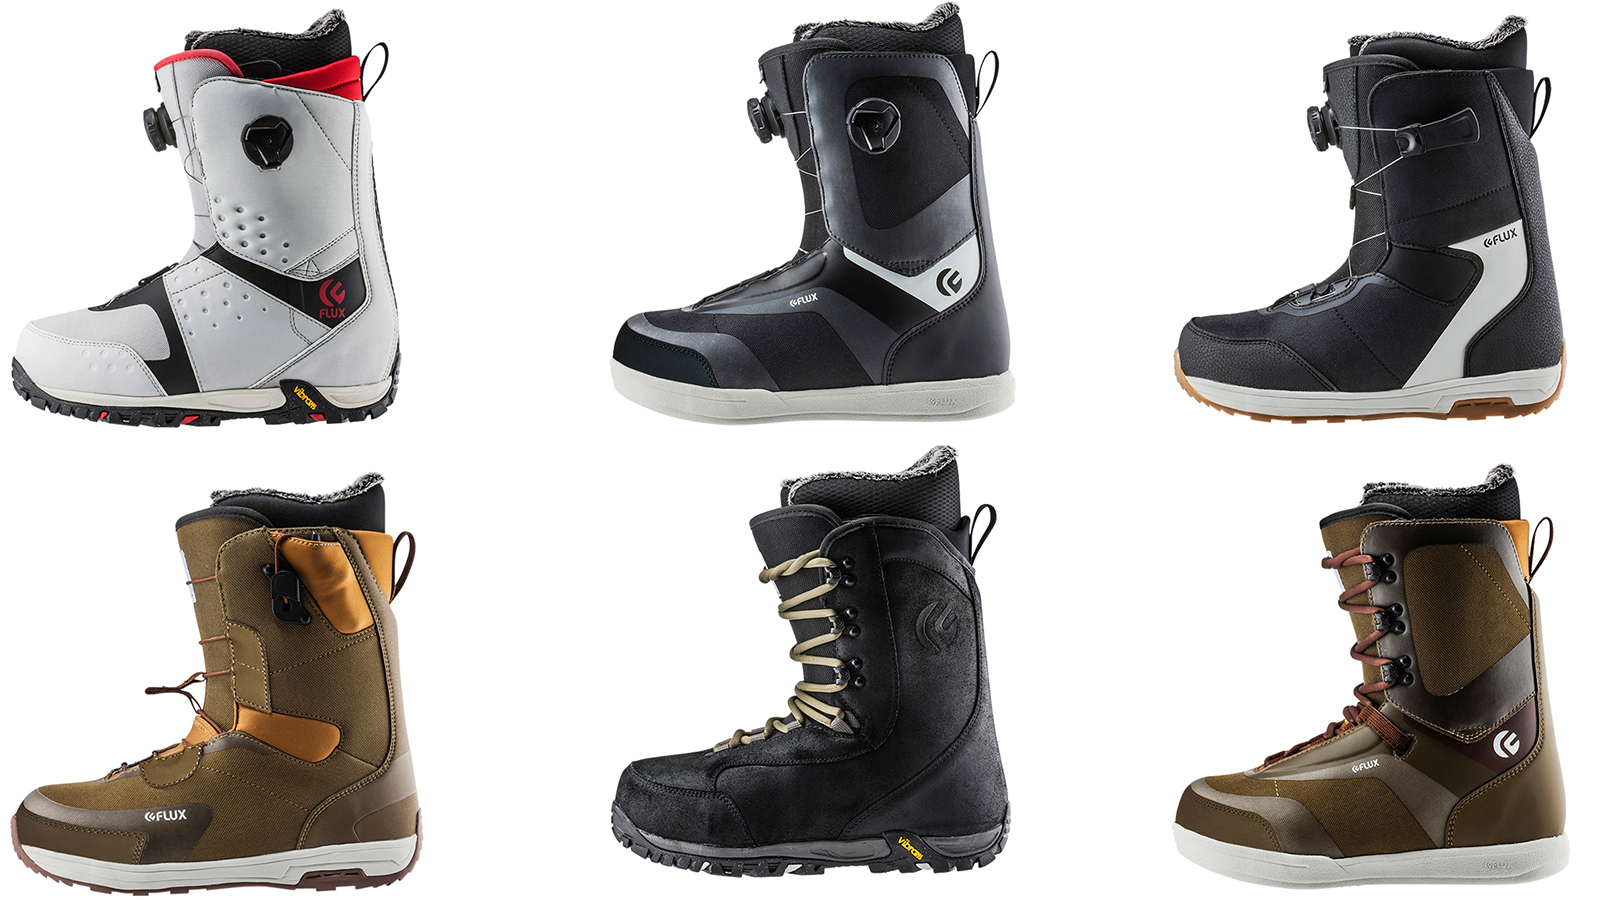 Flux Snowboard Boots